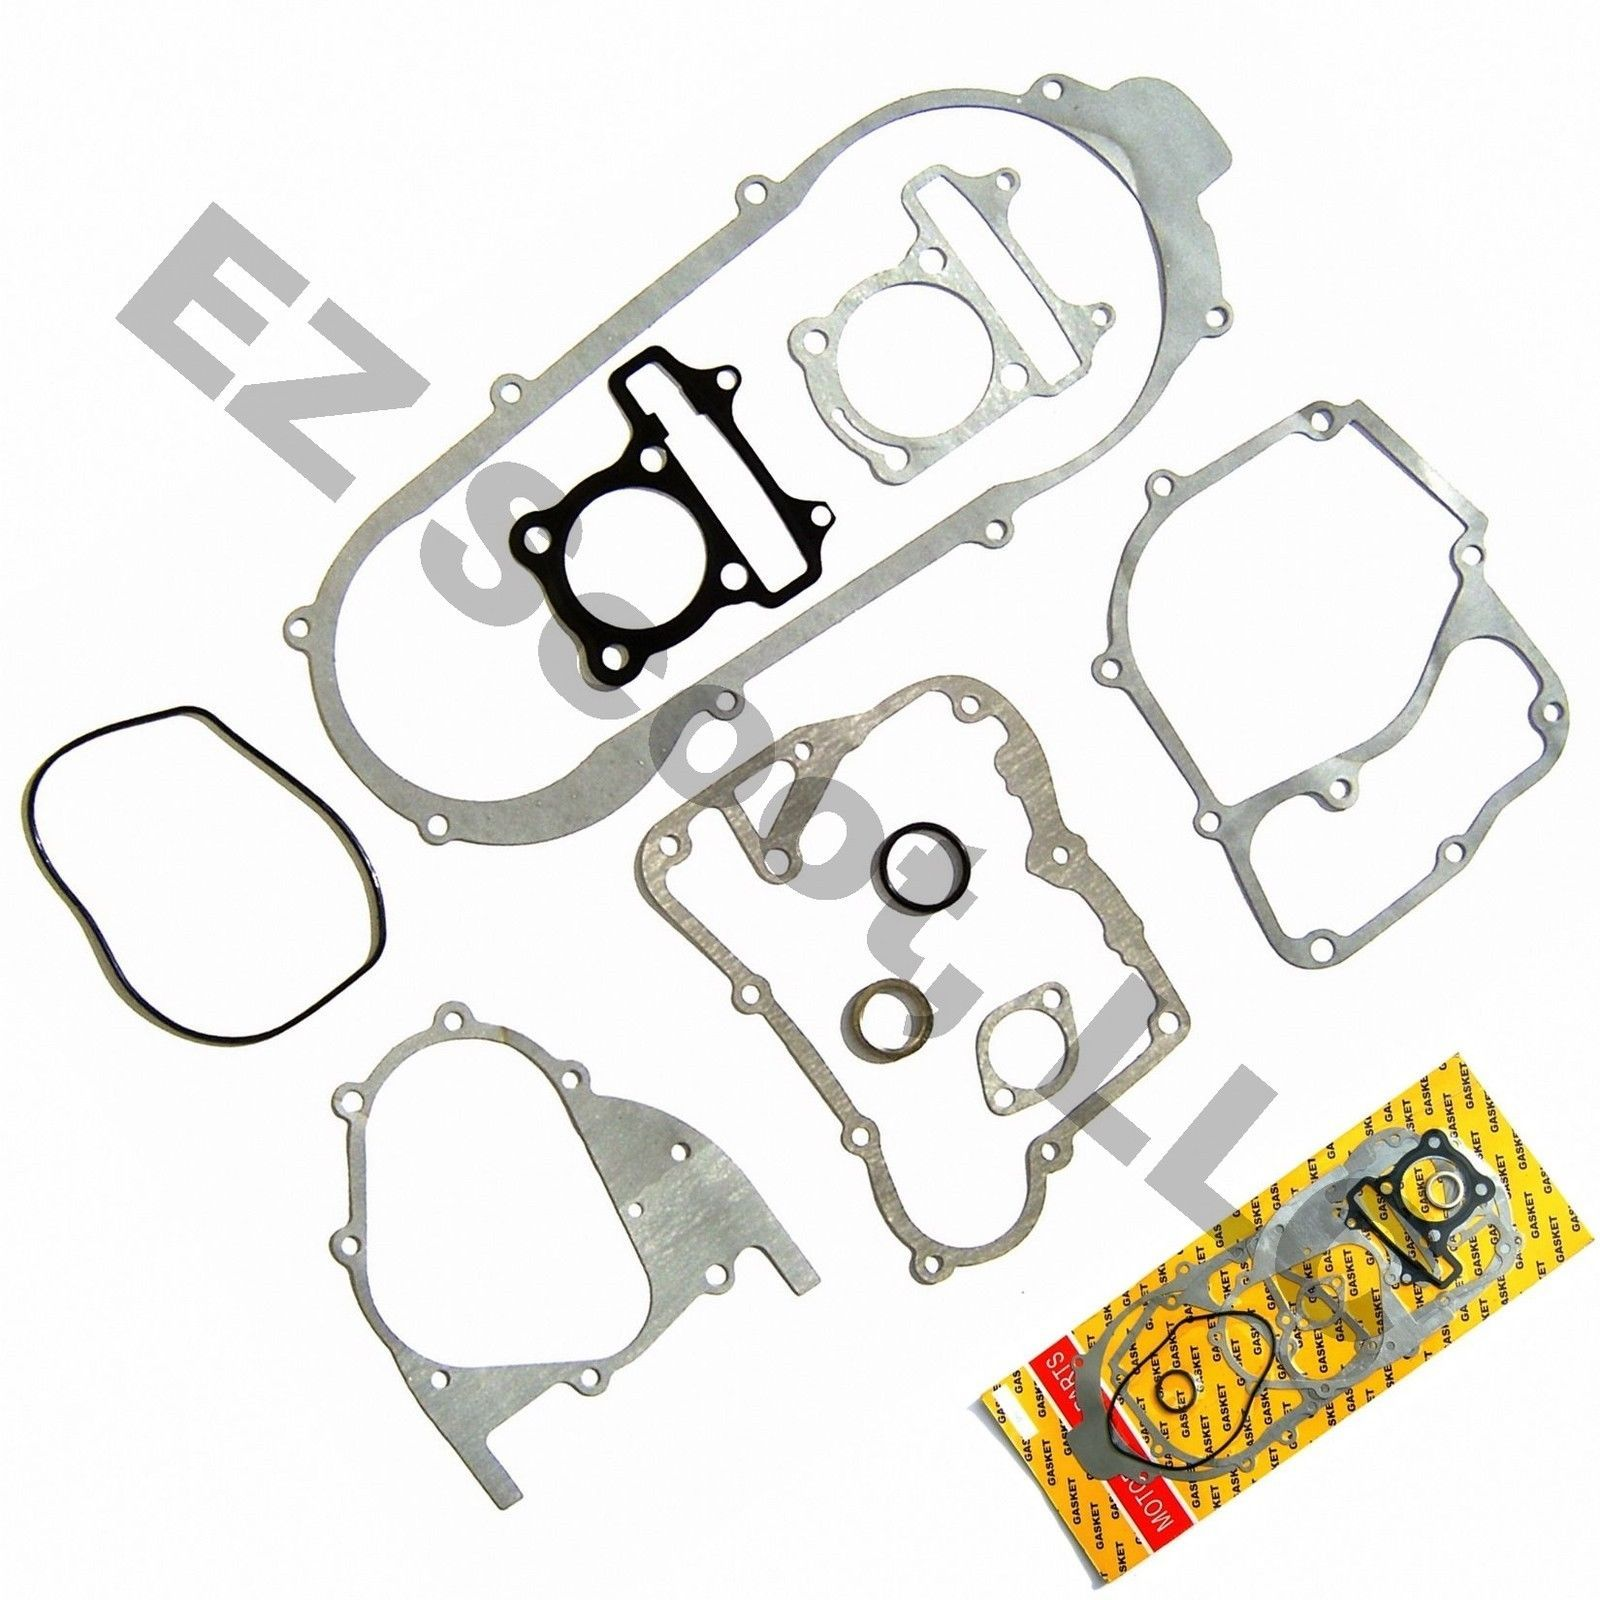 Complete Engine Gasket Set 152qmi 16 Gy6 4t Chinese Scooter Moped Peace Vip Jcl Chinese Scooters Scooter Moped